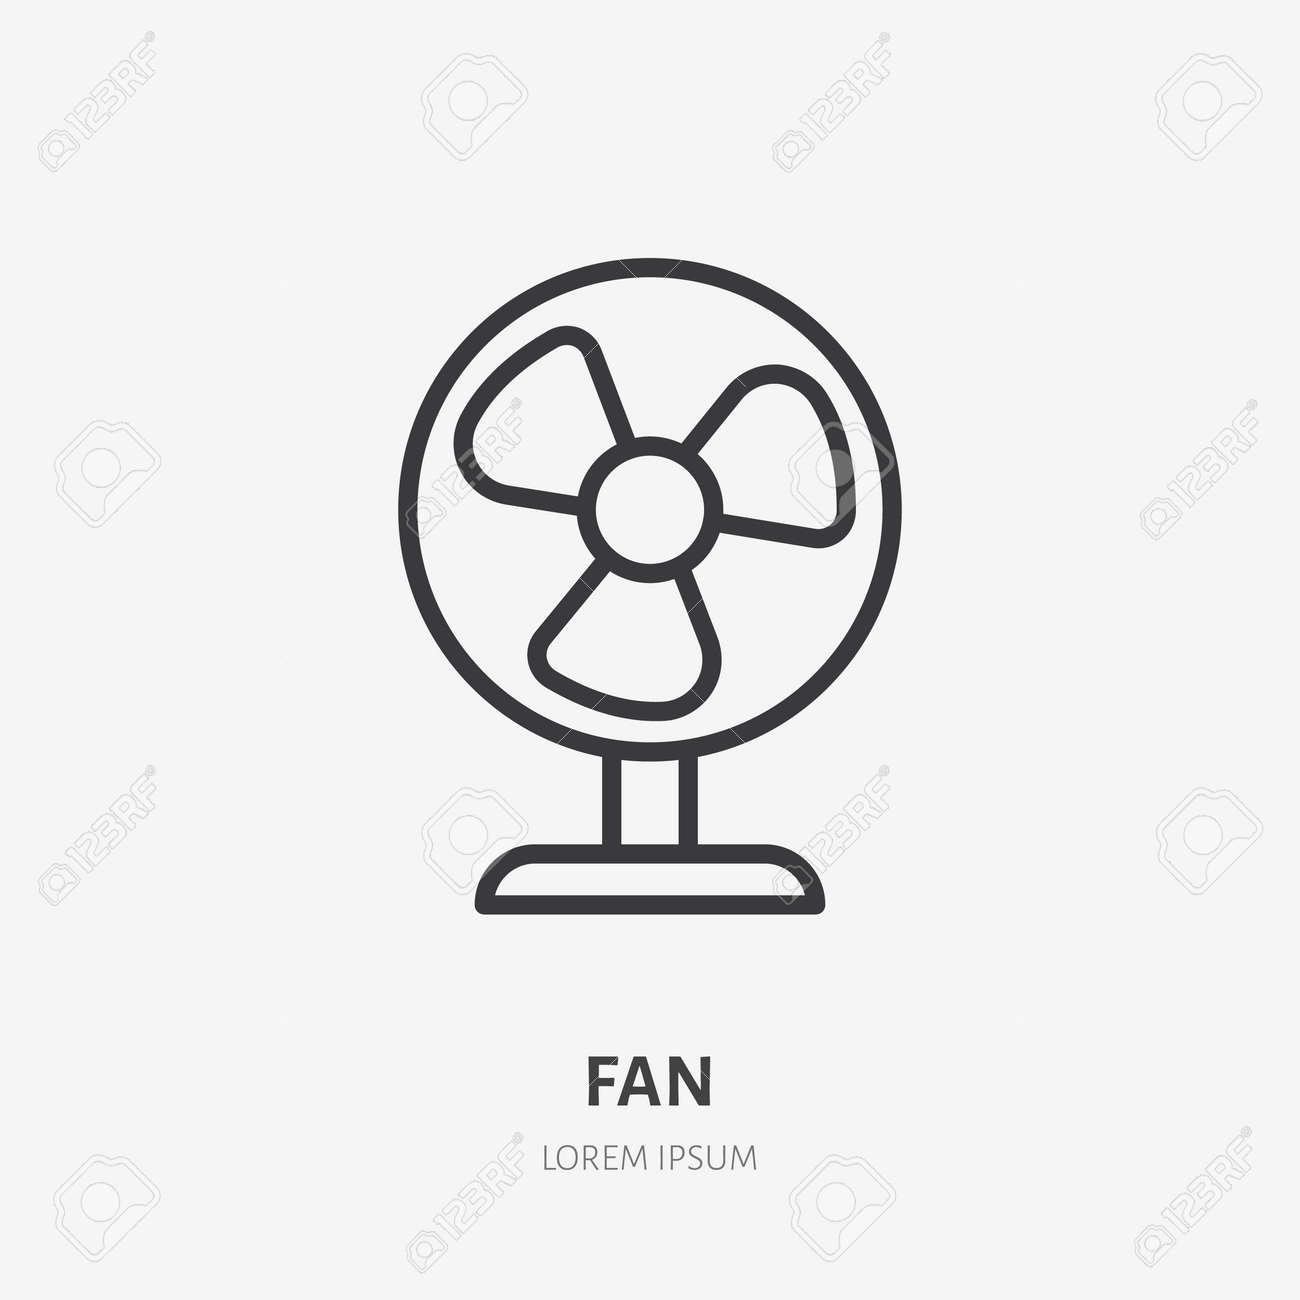 Fan conditioner flat line icon. Vector outline illustration of vintage propeller. Black color thin linear sign for small table ventilator. - 163160945